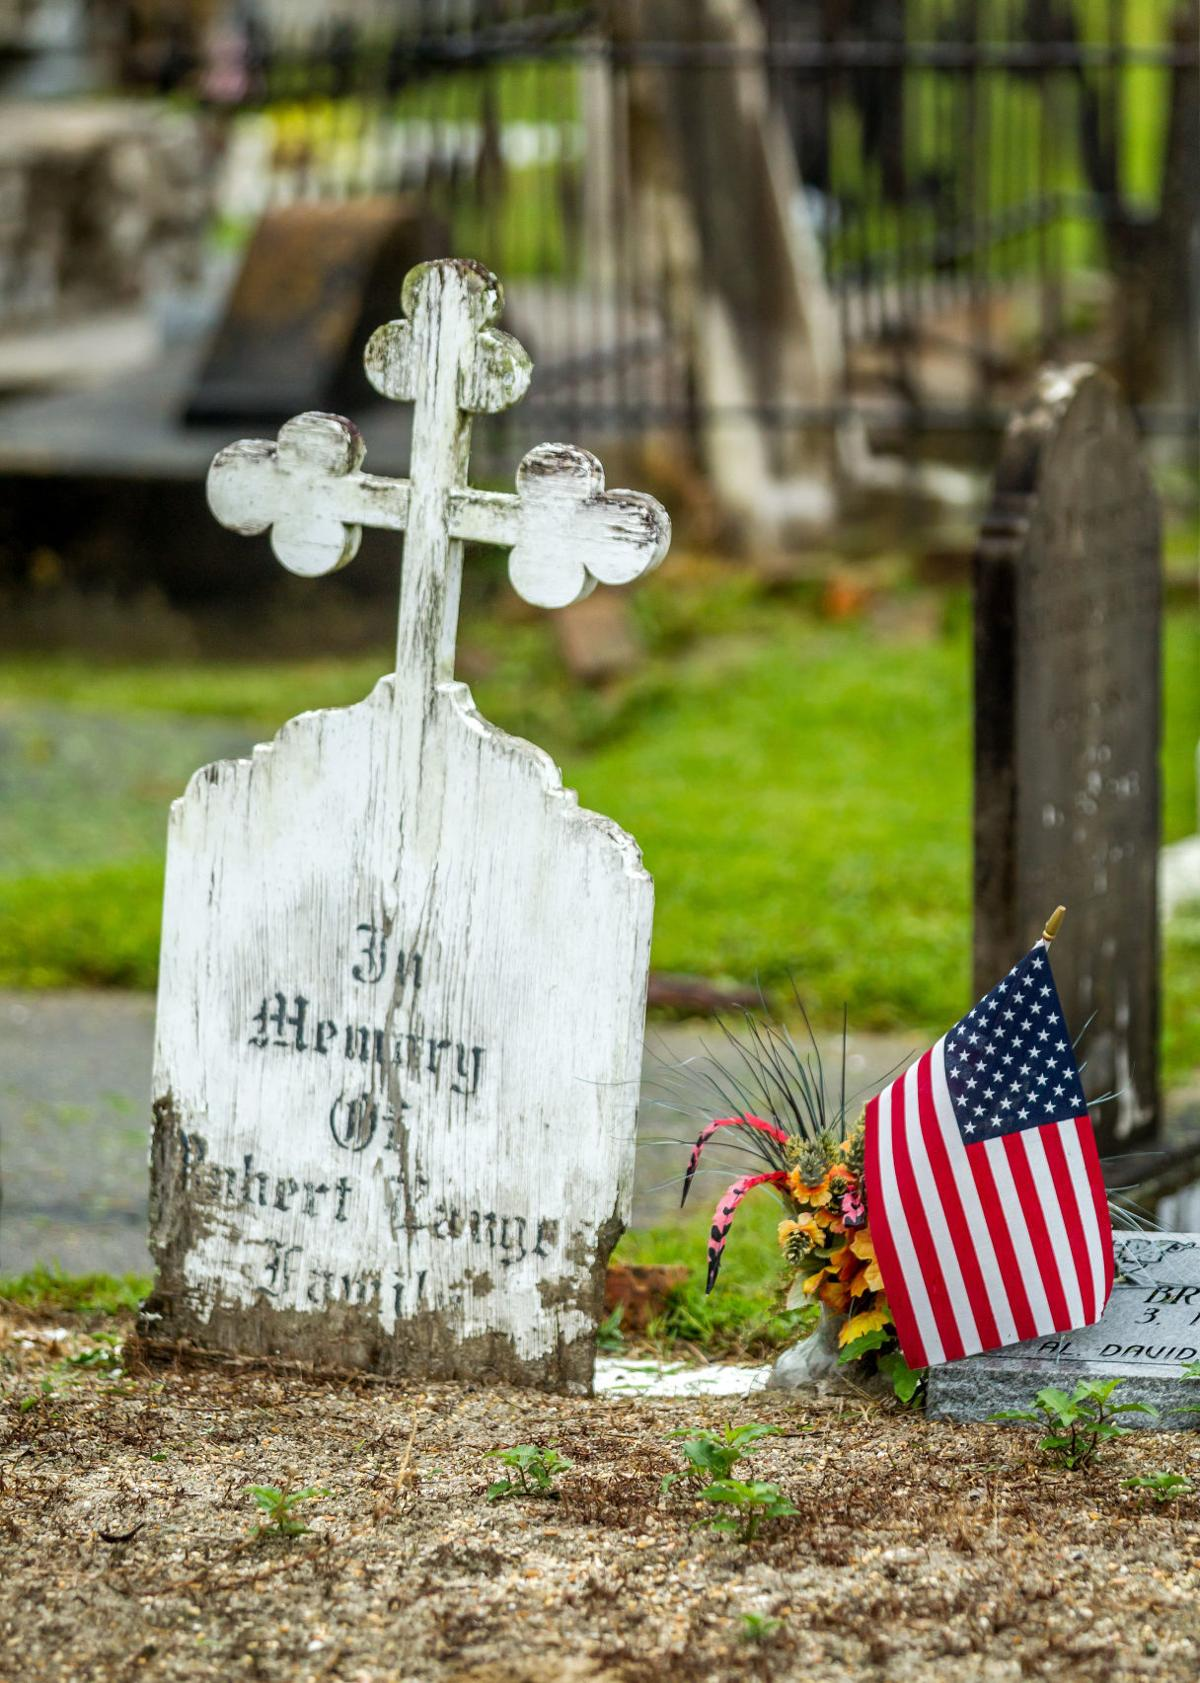 Madisonville Cemetery awaits restoration after town takeover